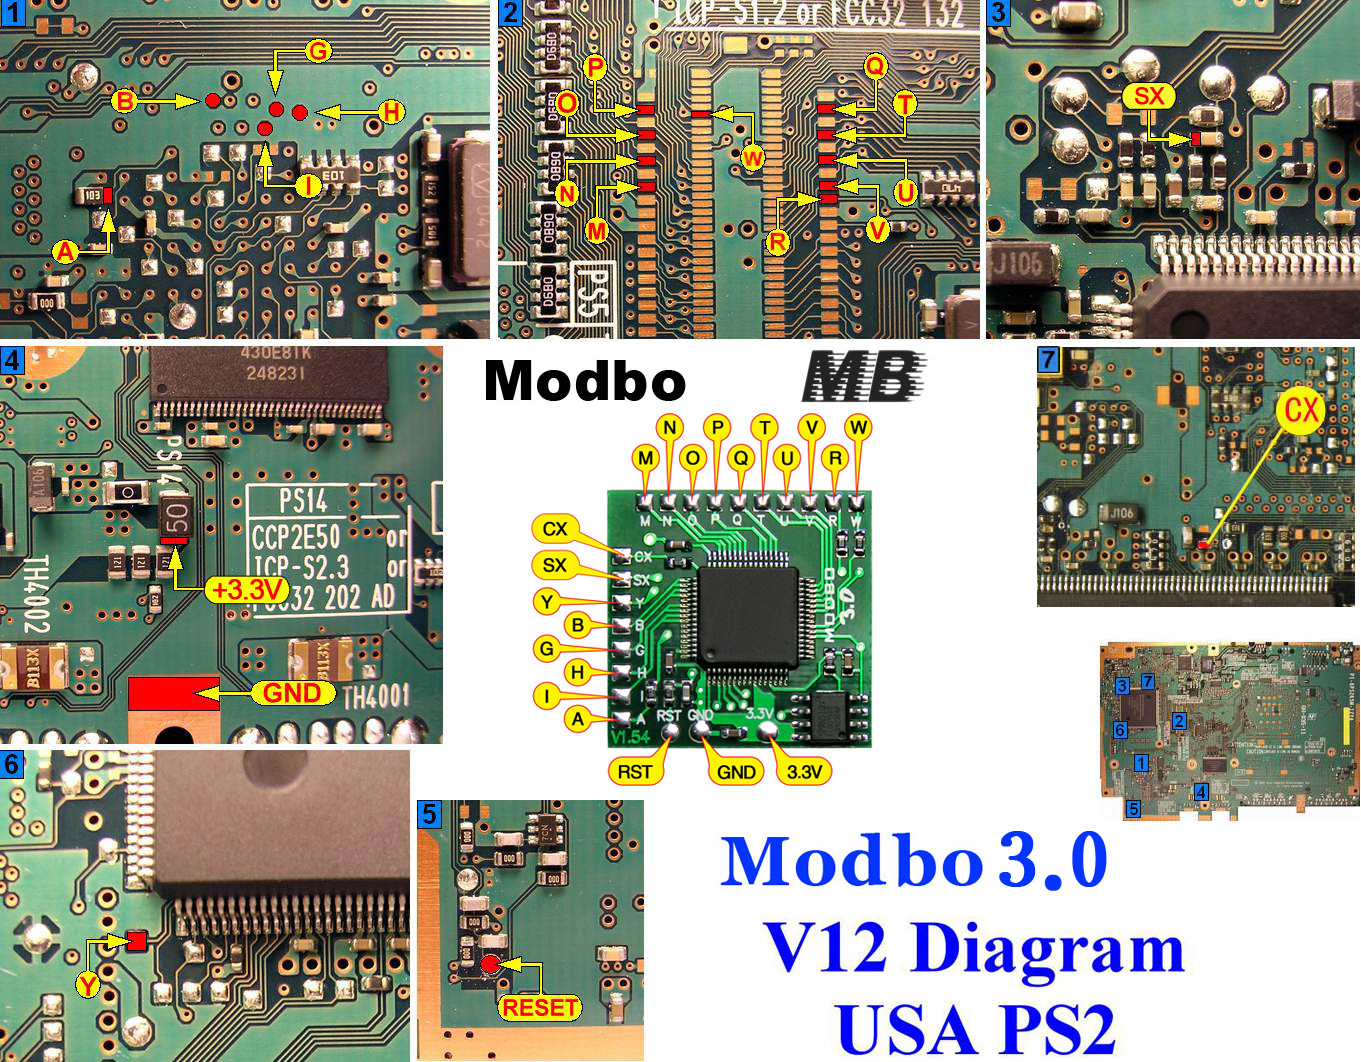 Modbo 4.0 V12 PS2 diagram